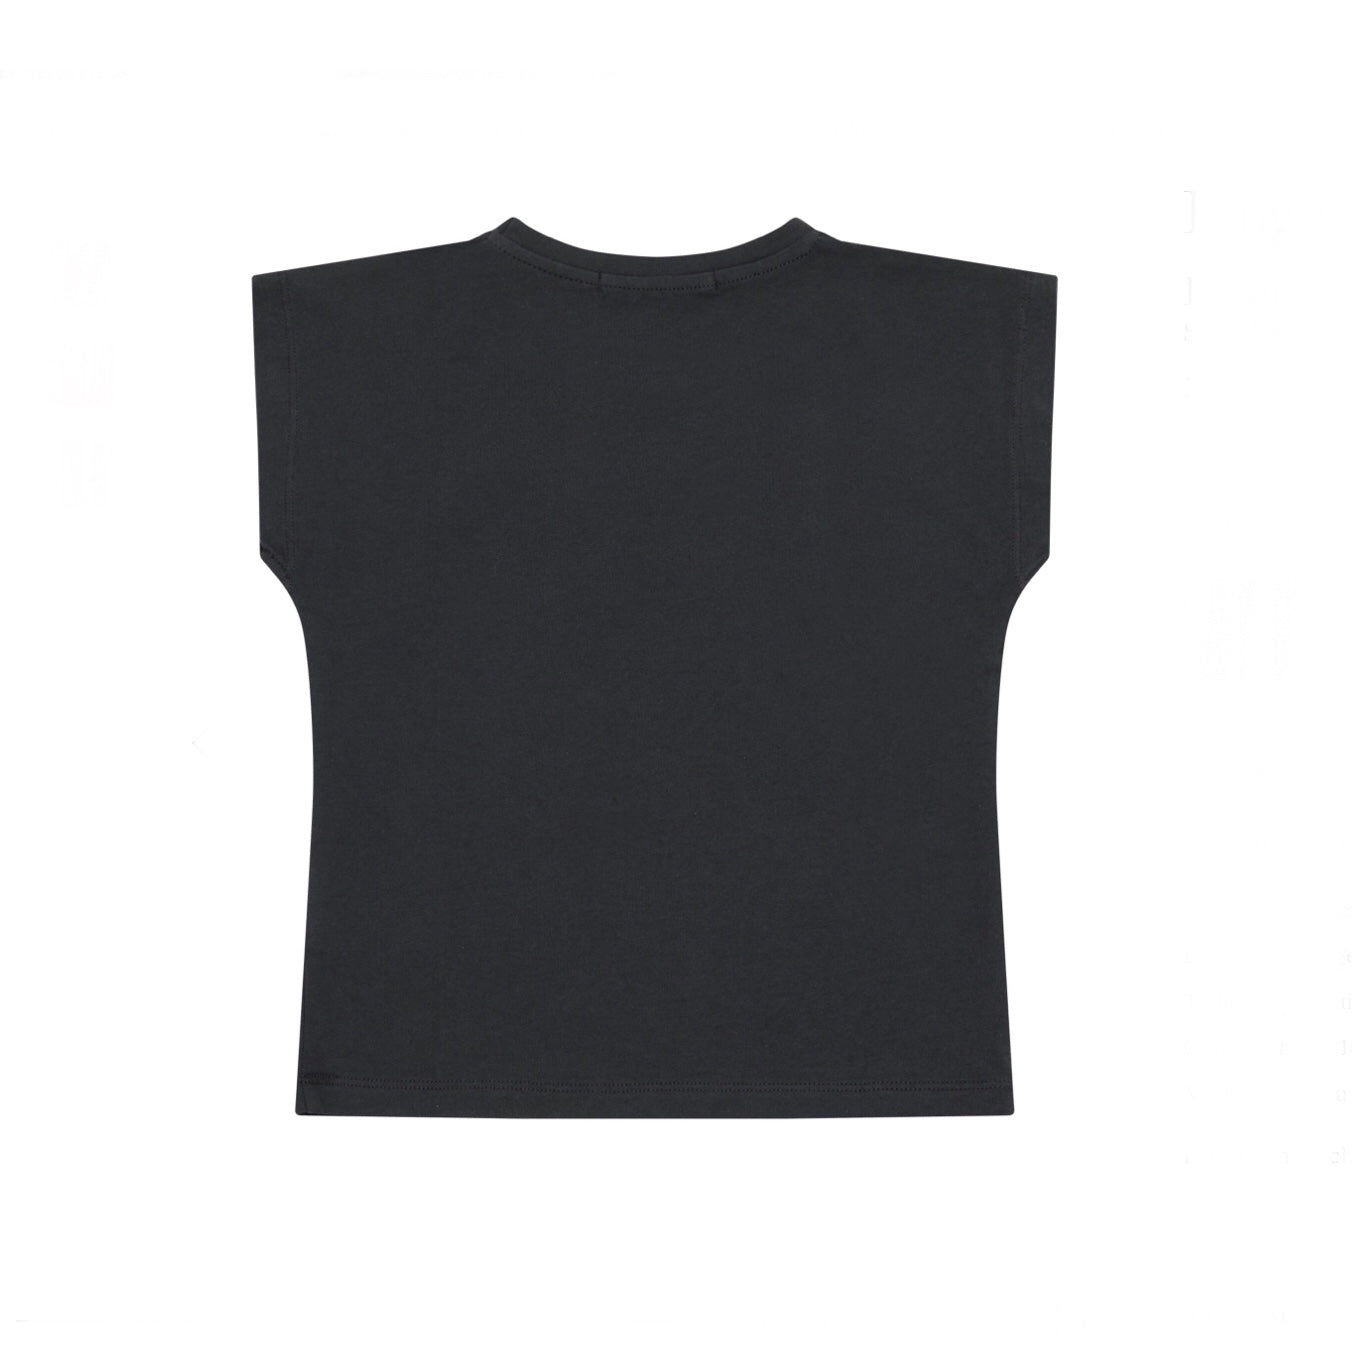 MARSH Ash Black Heart - Sleeveless T-Shirt